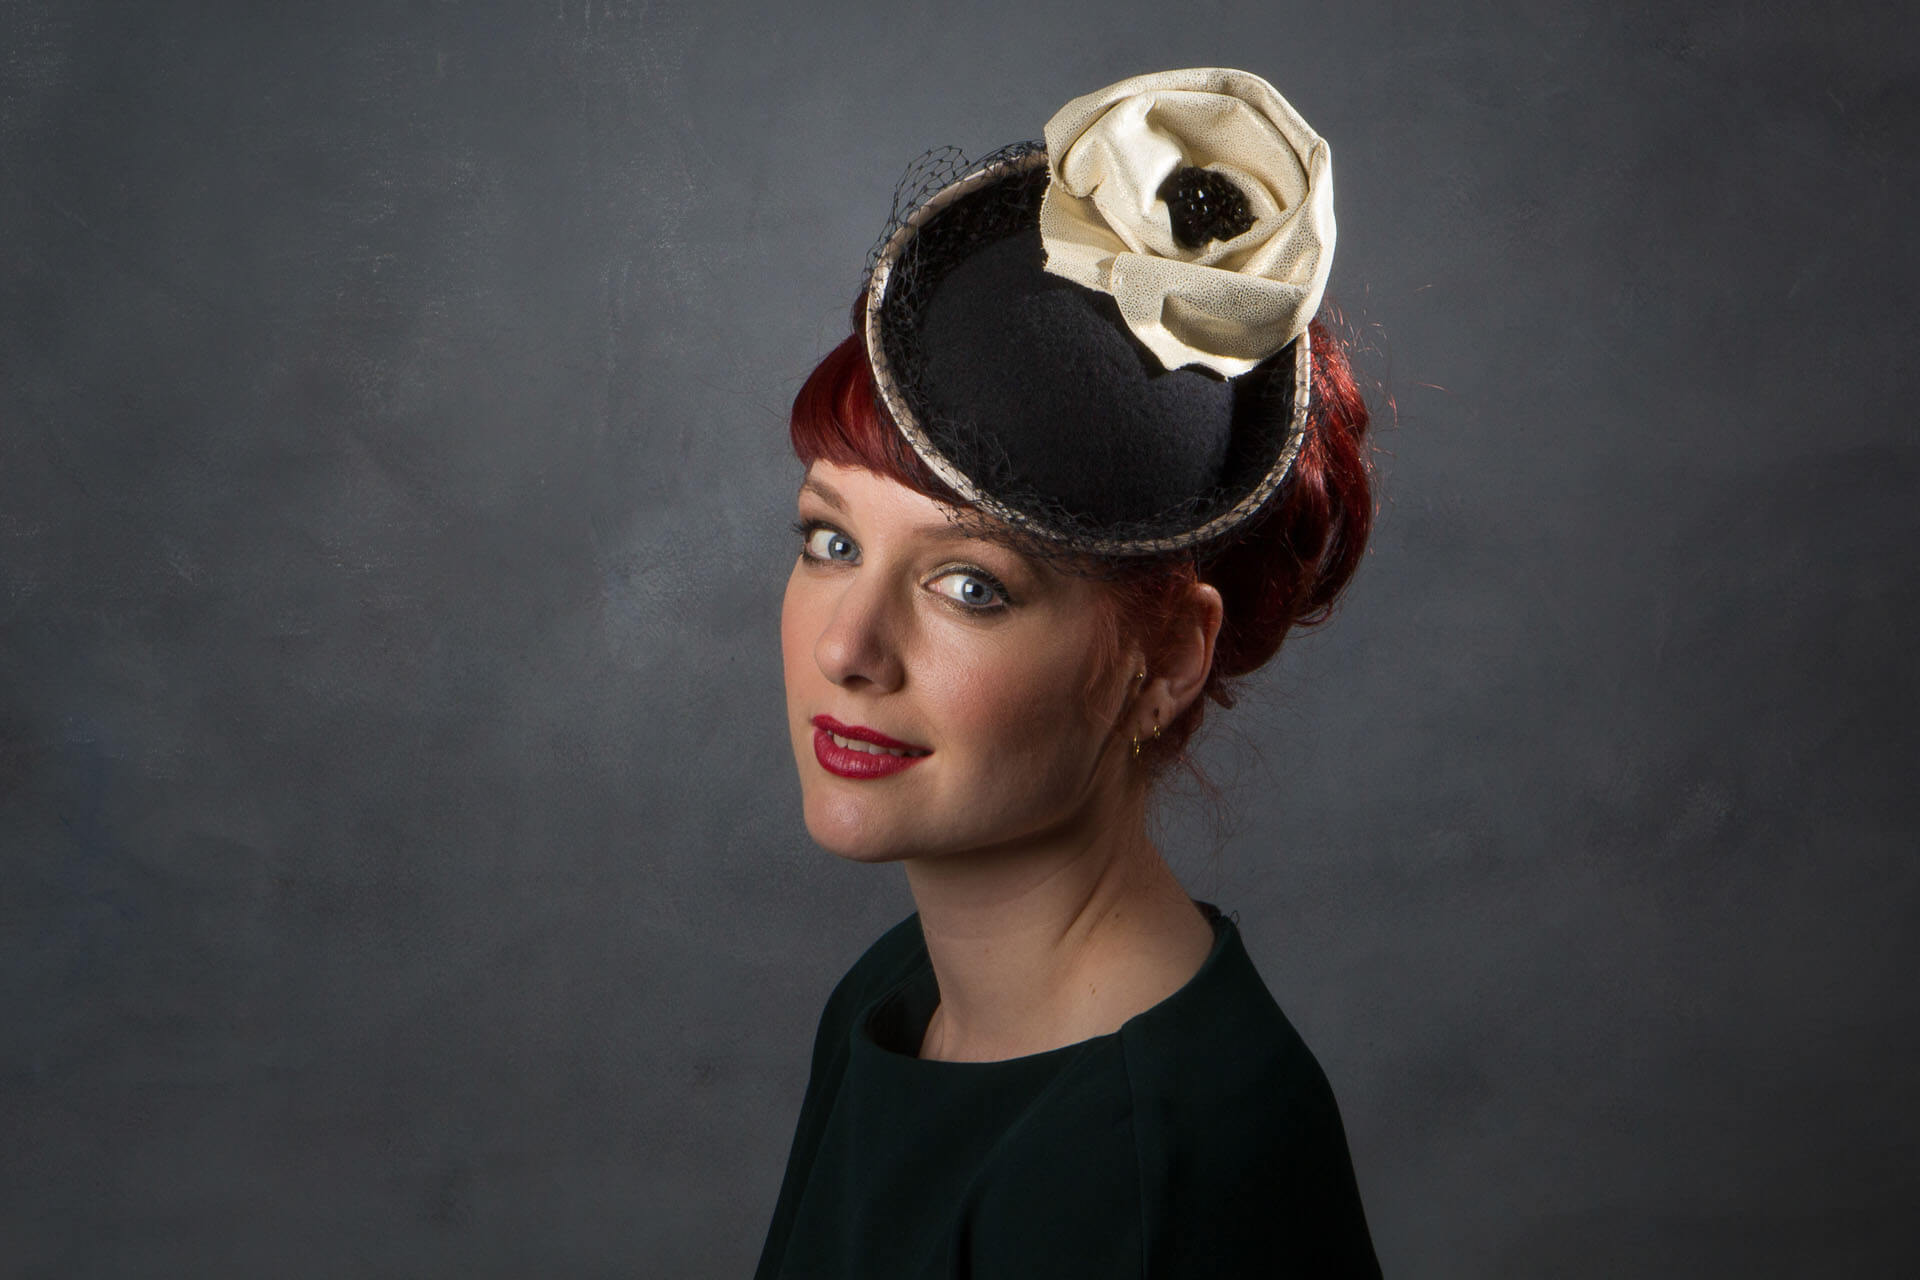 ba4993cfcf2 Felt Burlesque Style Black and Gold Leather Hat